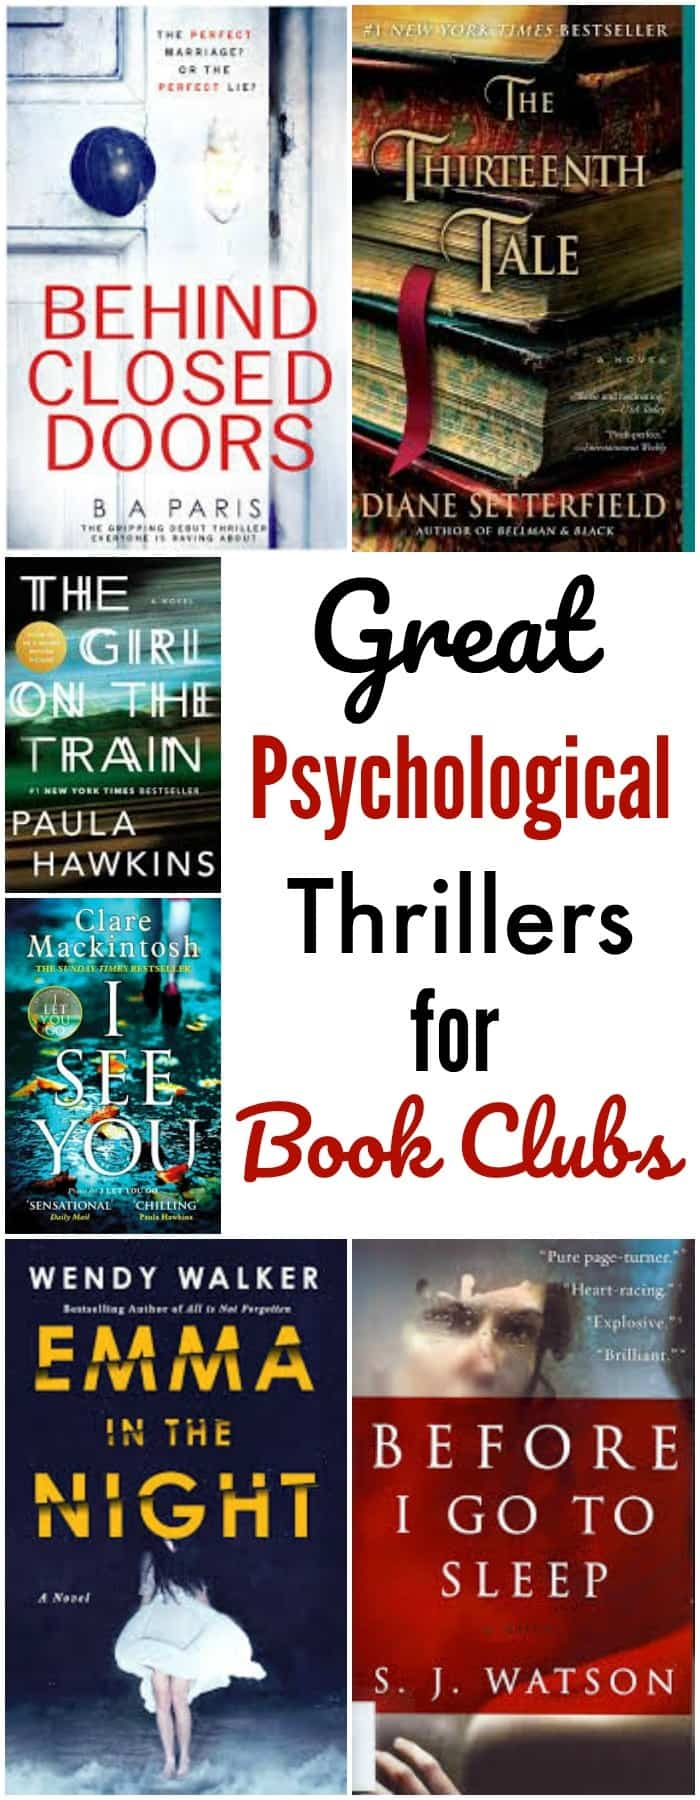 a collage of books with title text reading Great Psychological Thrillers for Book Clubs